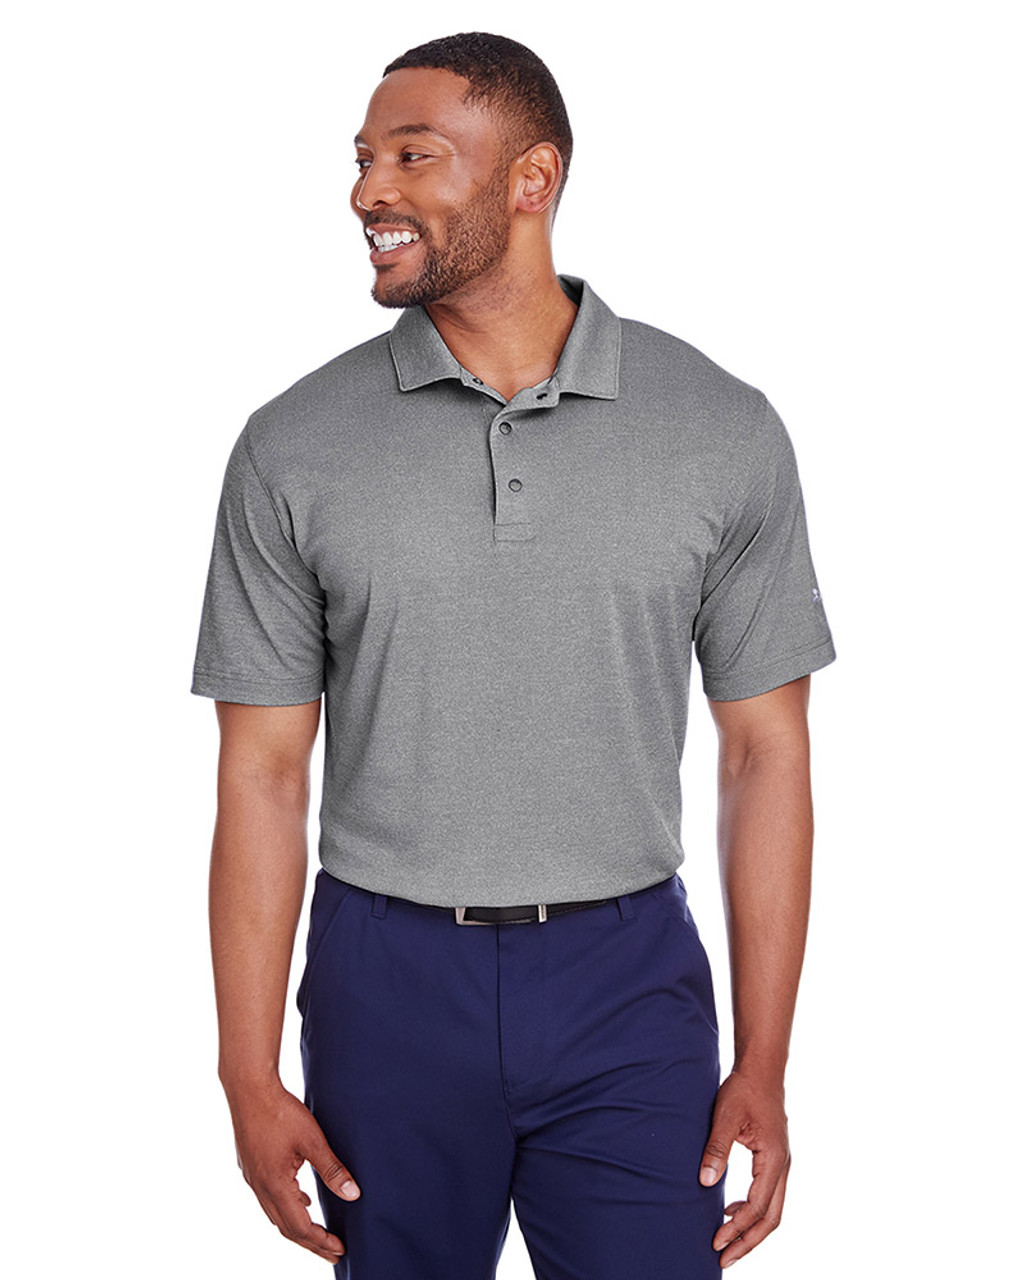 Puma Black Heather - 597220 Puma Golf Men's Grill-To-Green Polo | Blankclothing.ca